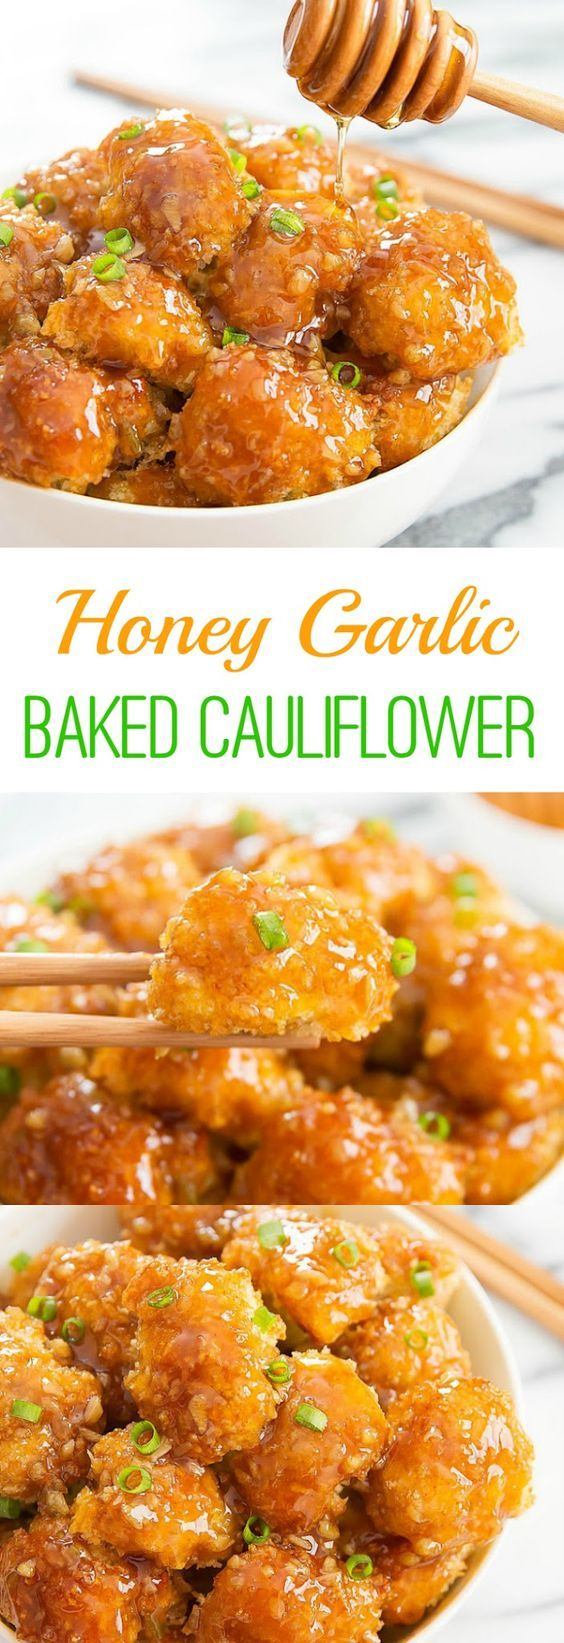 Honey Garlic Baked Cauliflower. An easy and delicious weeknight meal! | Salads & Sides: